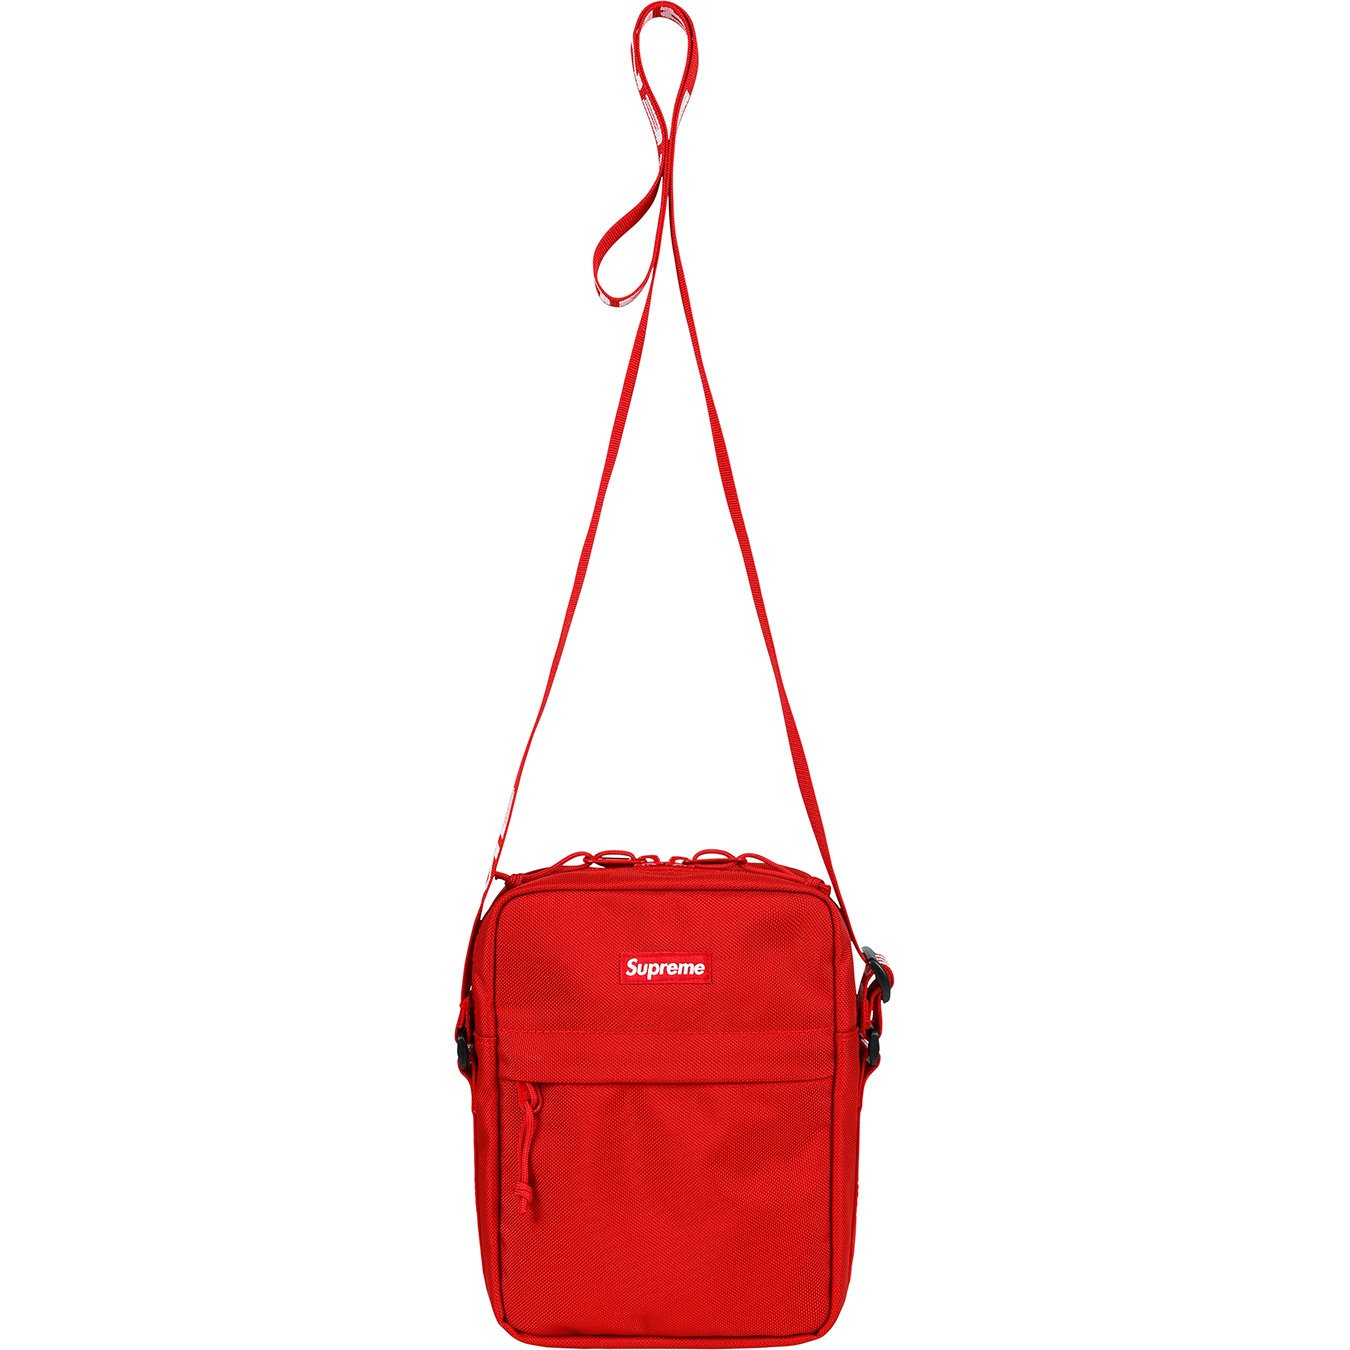 supreme-18ss-spring-summer-shoulder-bag